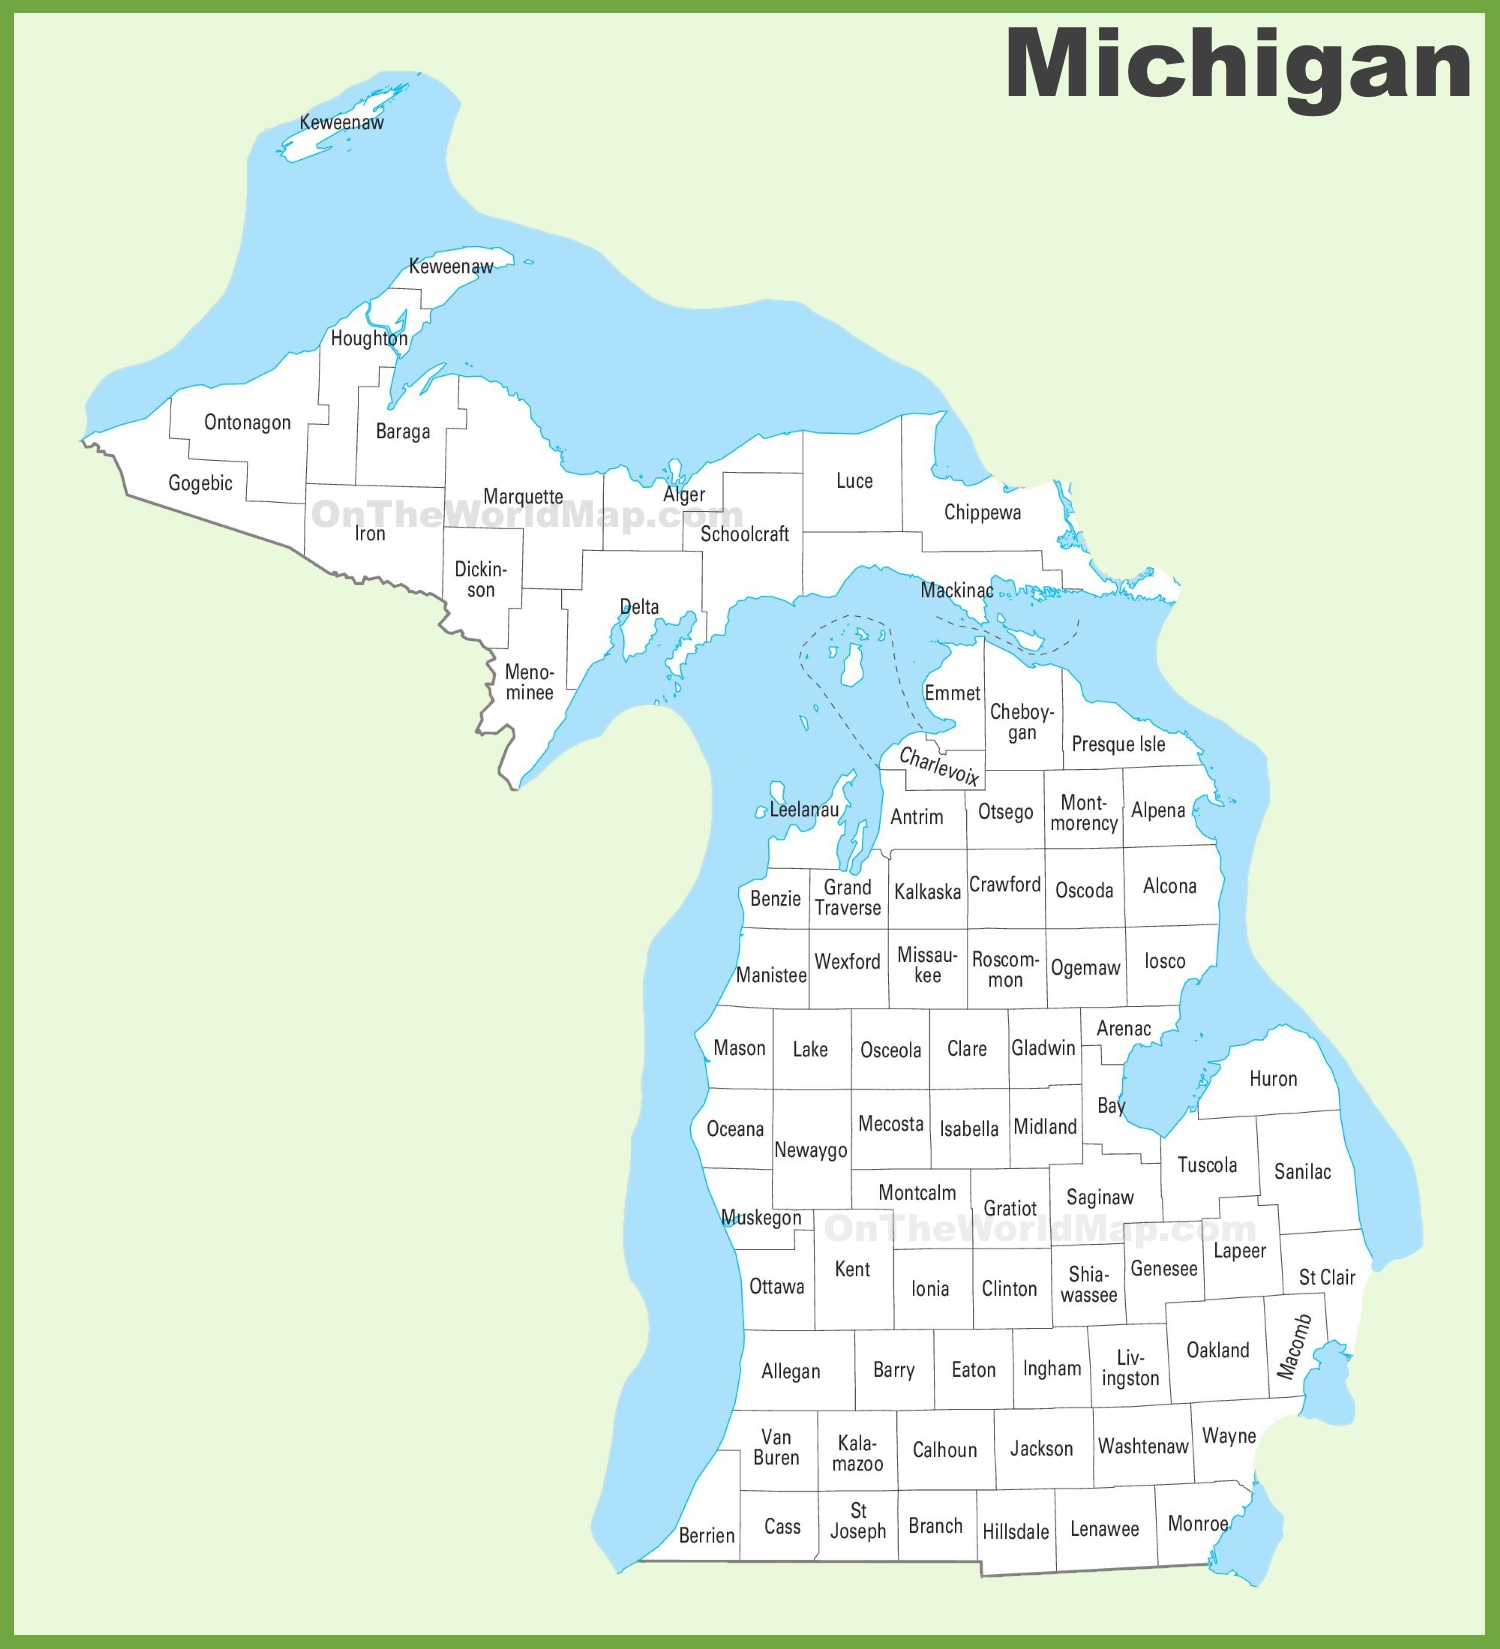 Michigan State Maps USA Maps Of Michigan MI - Mi state map